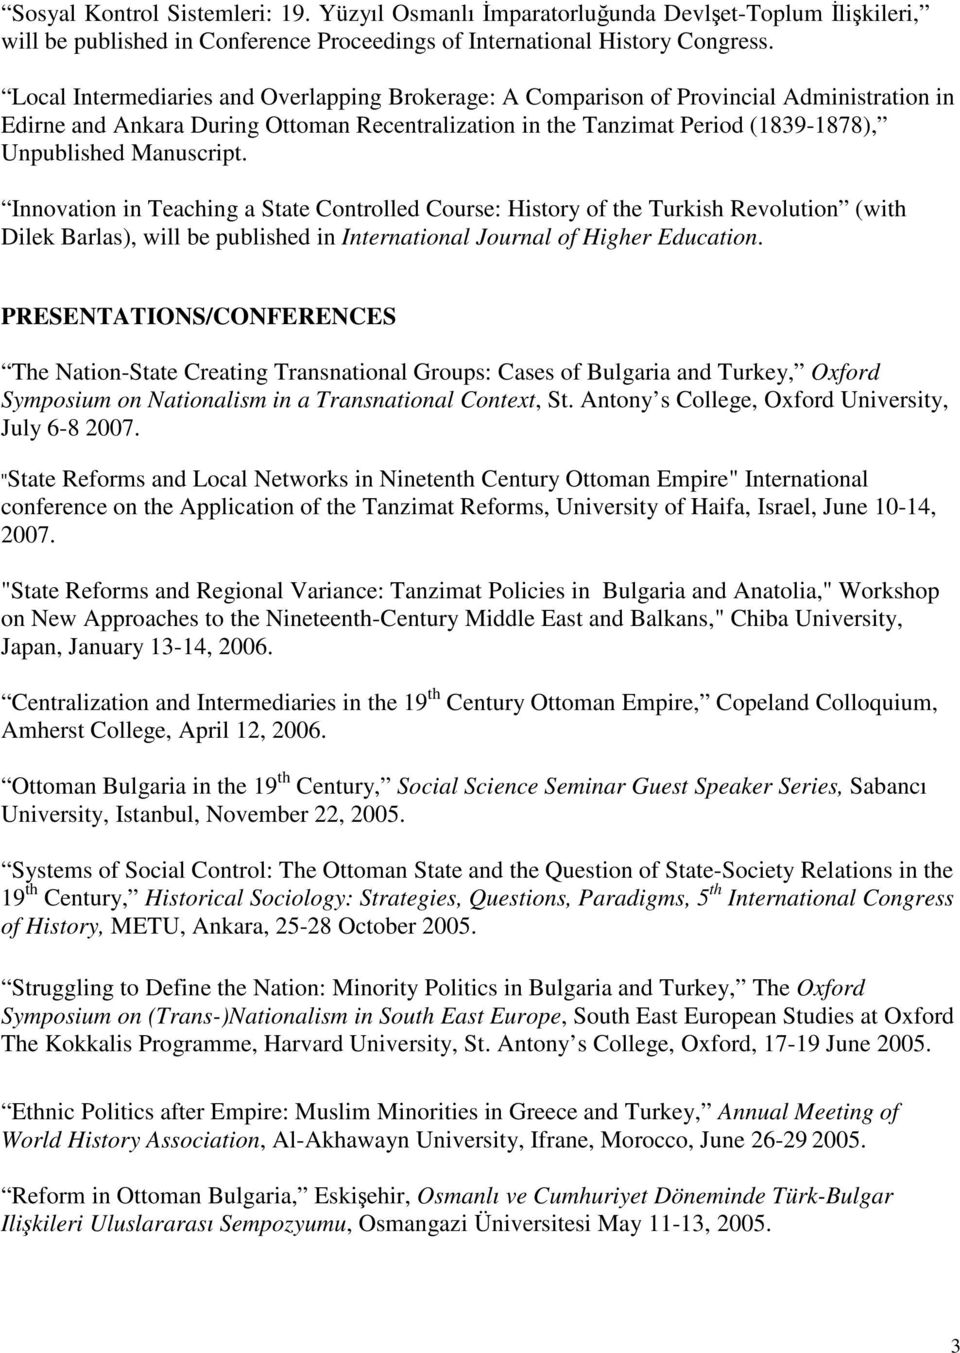 Manuscript. Innovation in Teaching a State Controlled Course: History of the Turkish Revolution (with Dilek Barlas), will be published in International Journal of Higher Education.